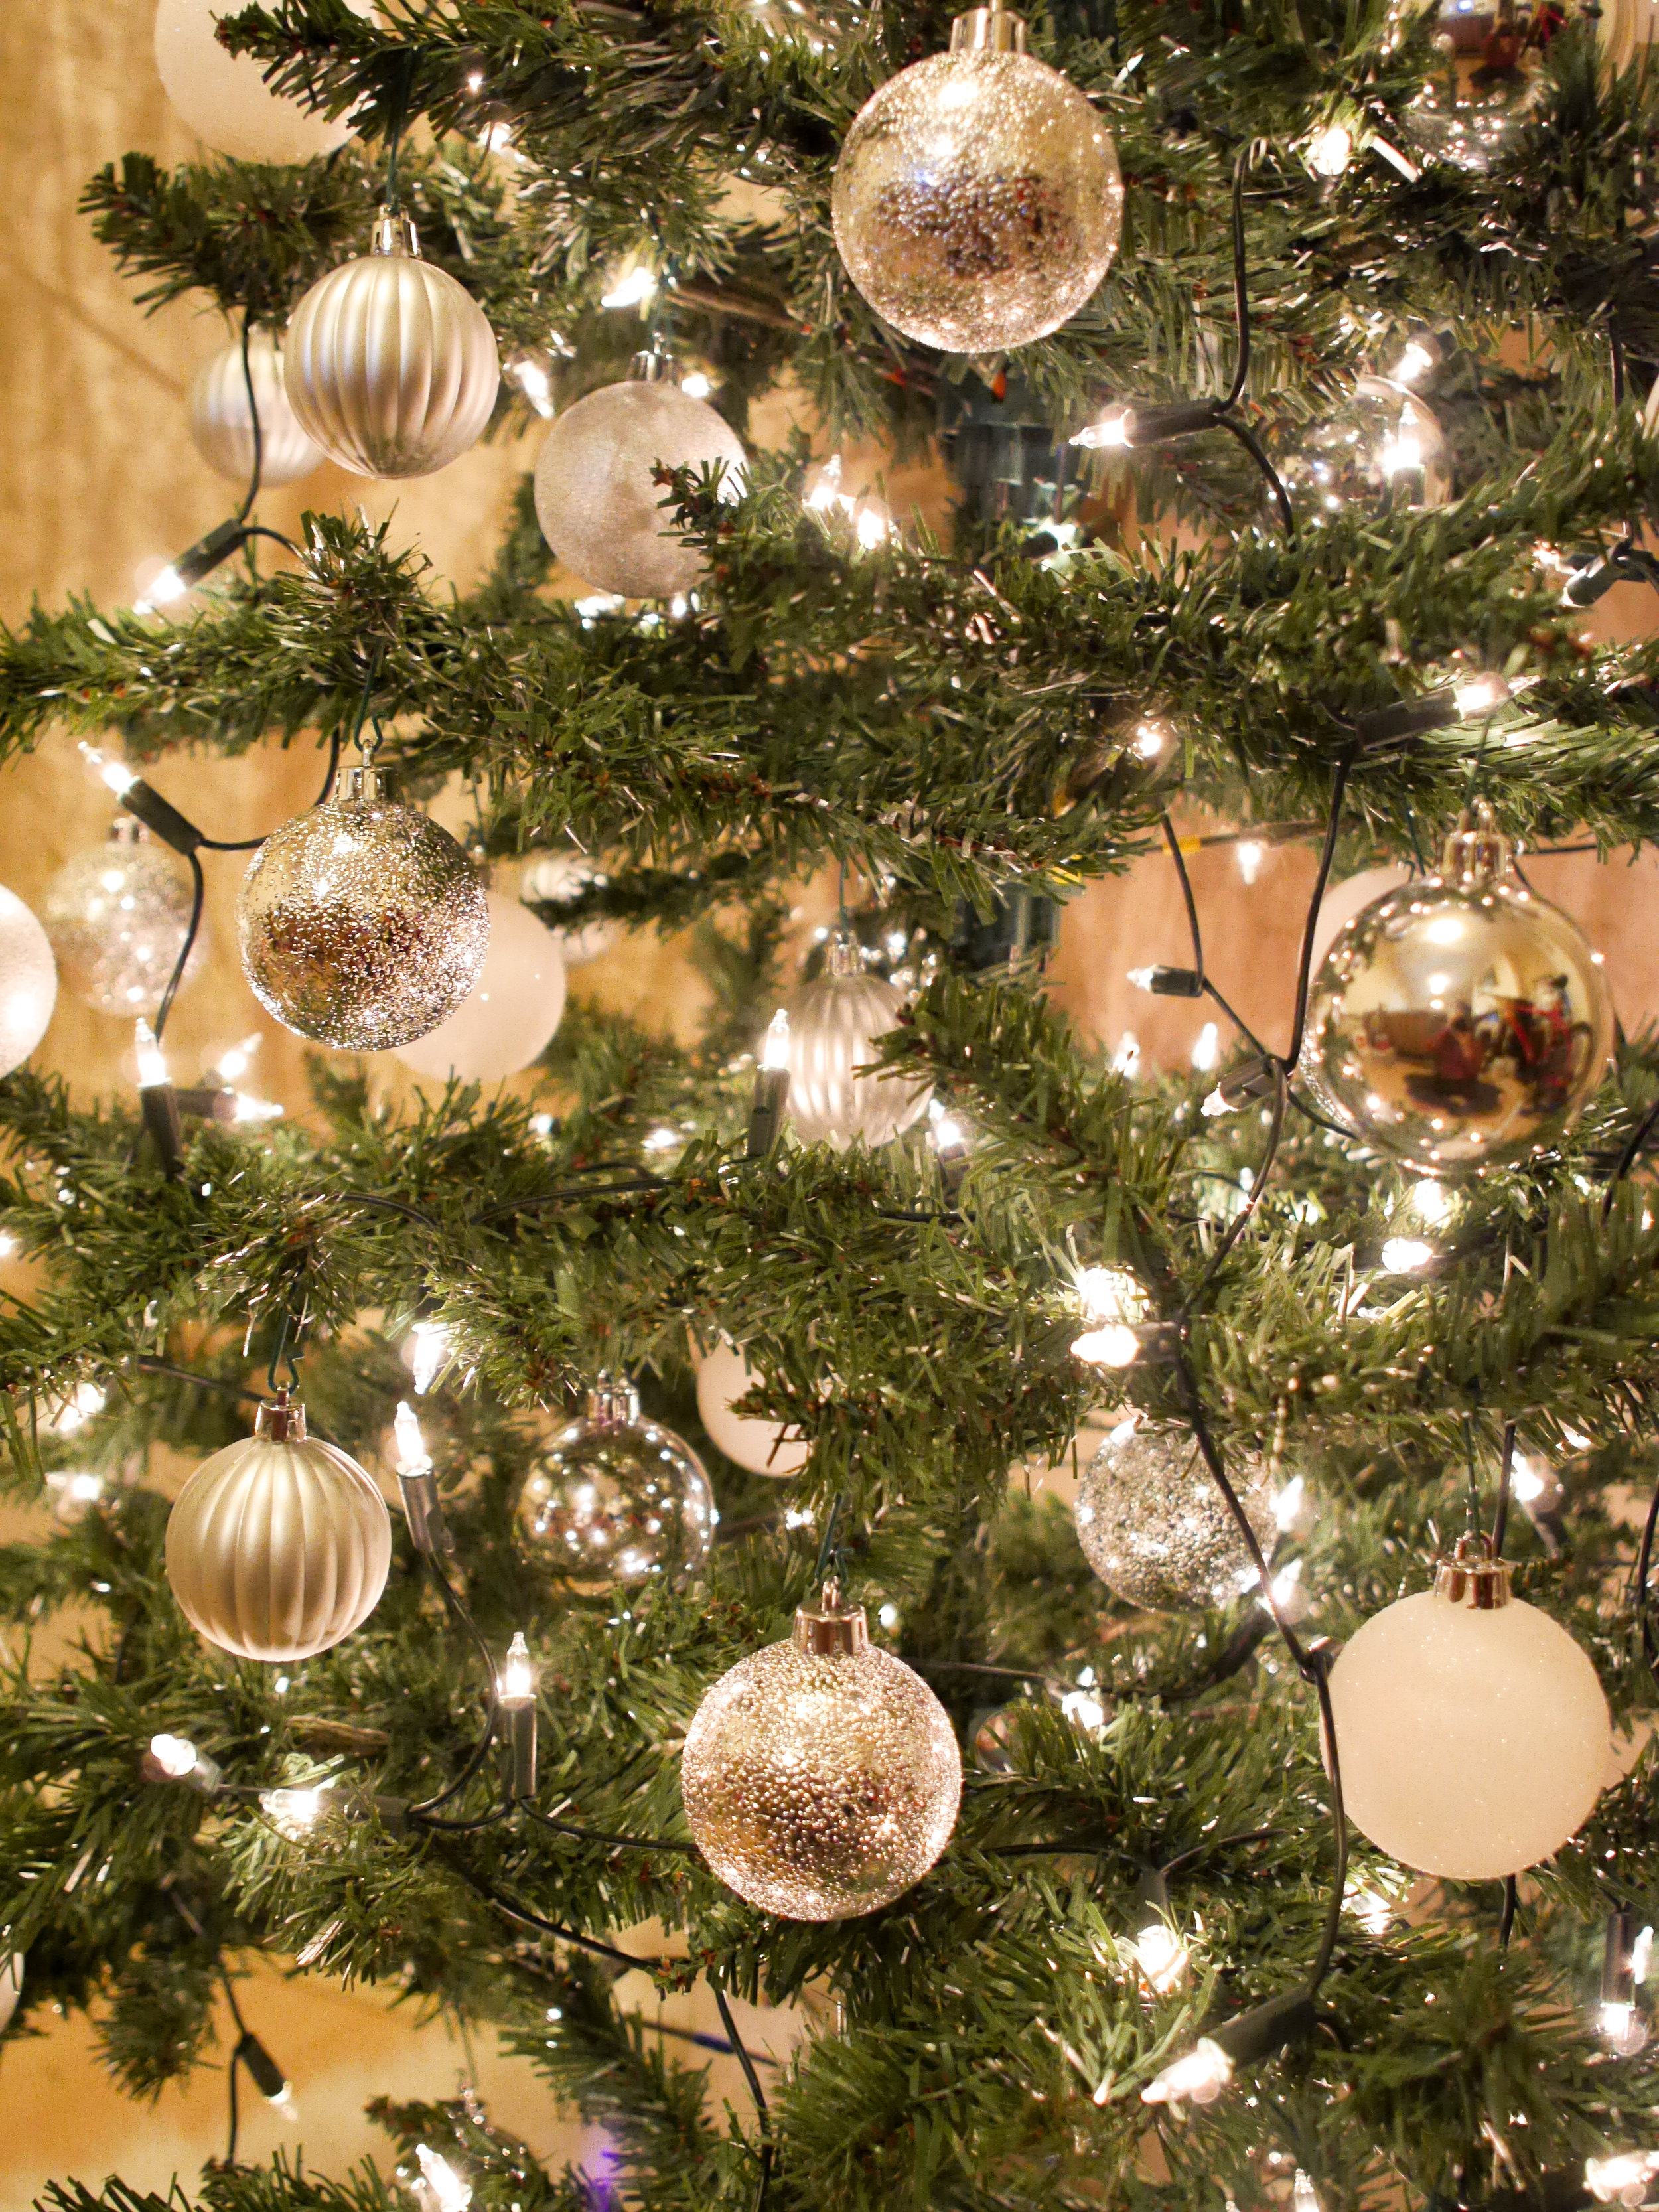 Lights and baubles on Christmas tree